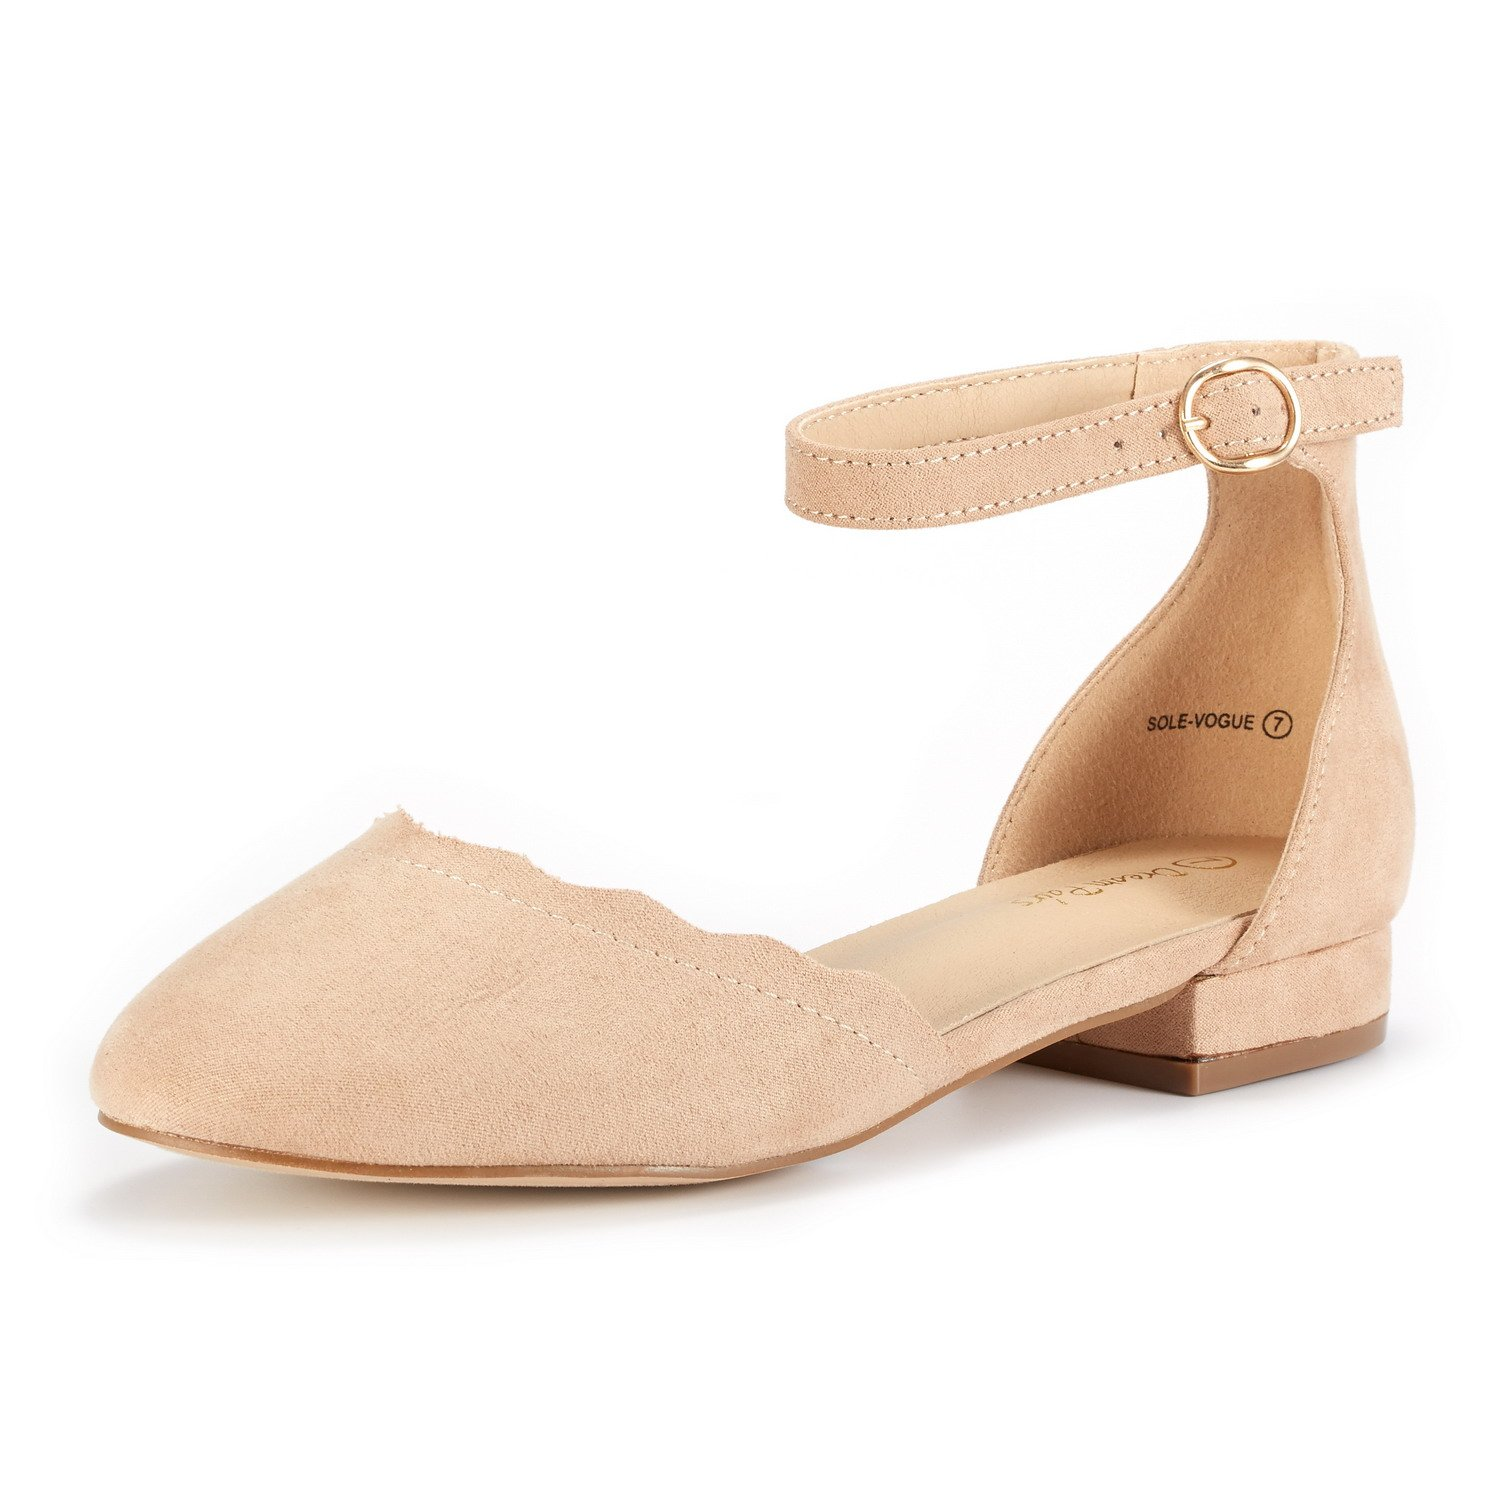 DREAM PAIRS Women's Sole_Vogue Nude Fashion Low Stacked Ankle Straps Flats Shoes Size 8 M US